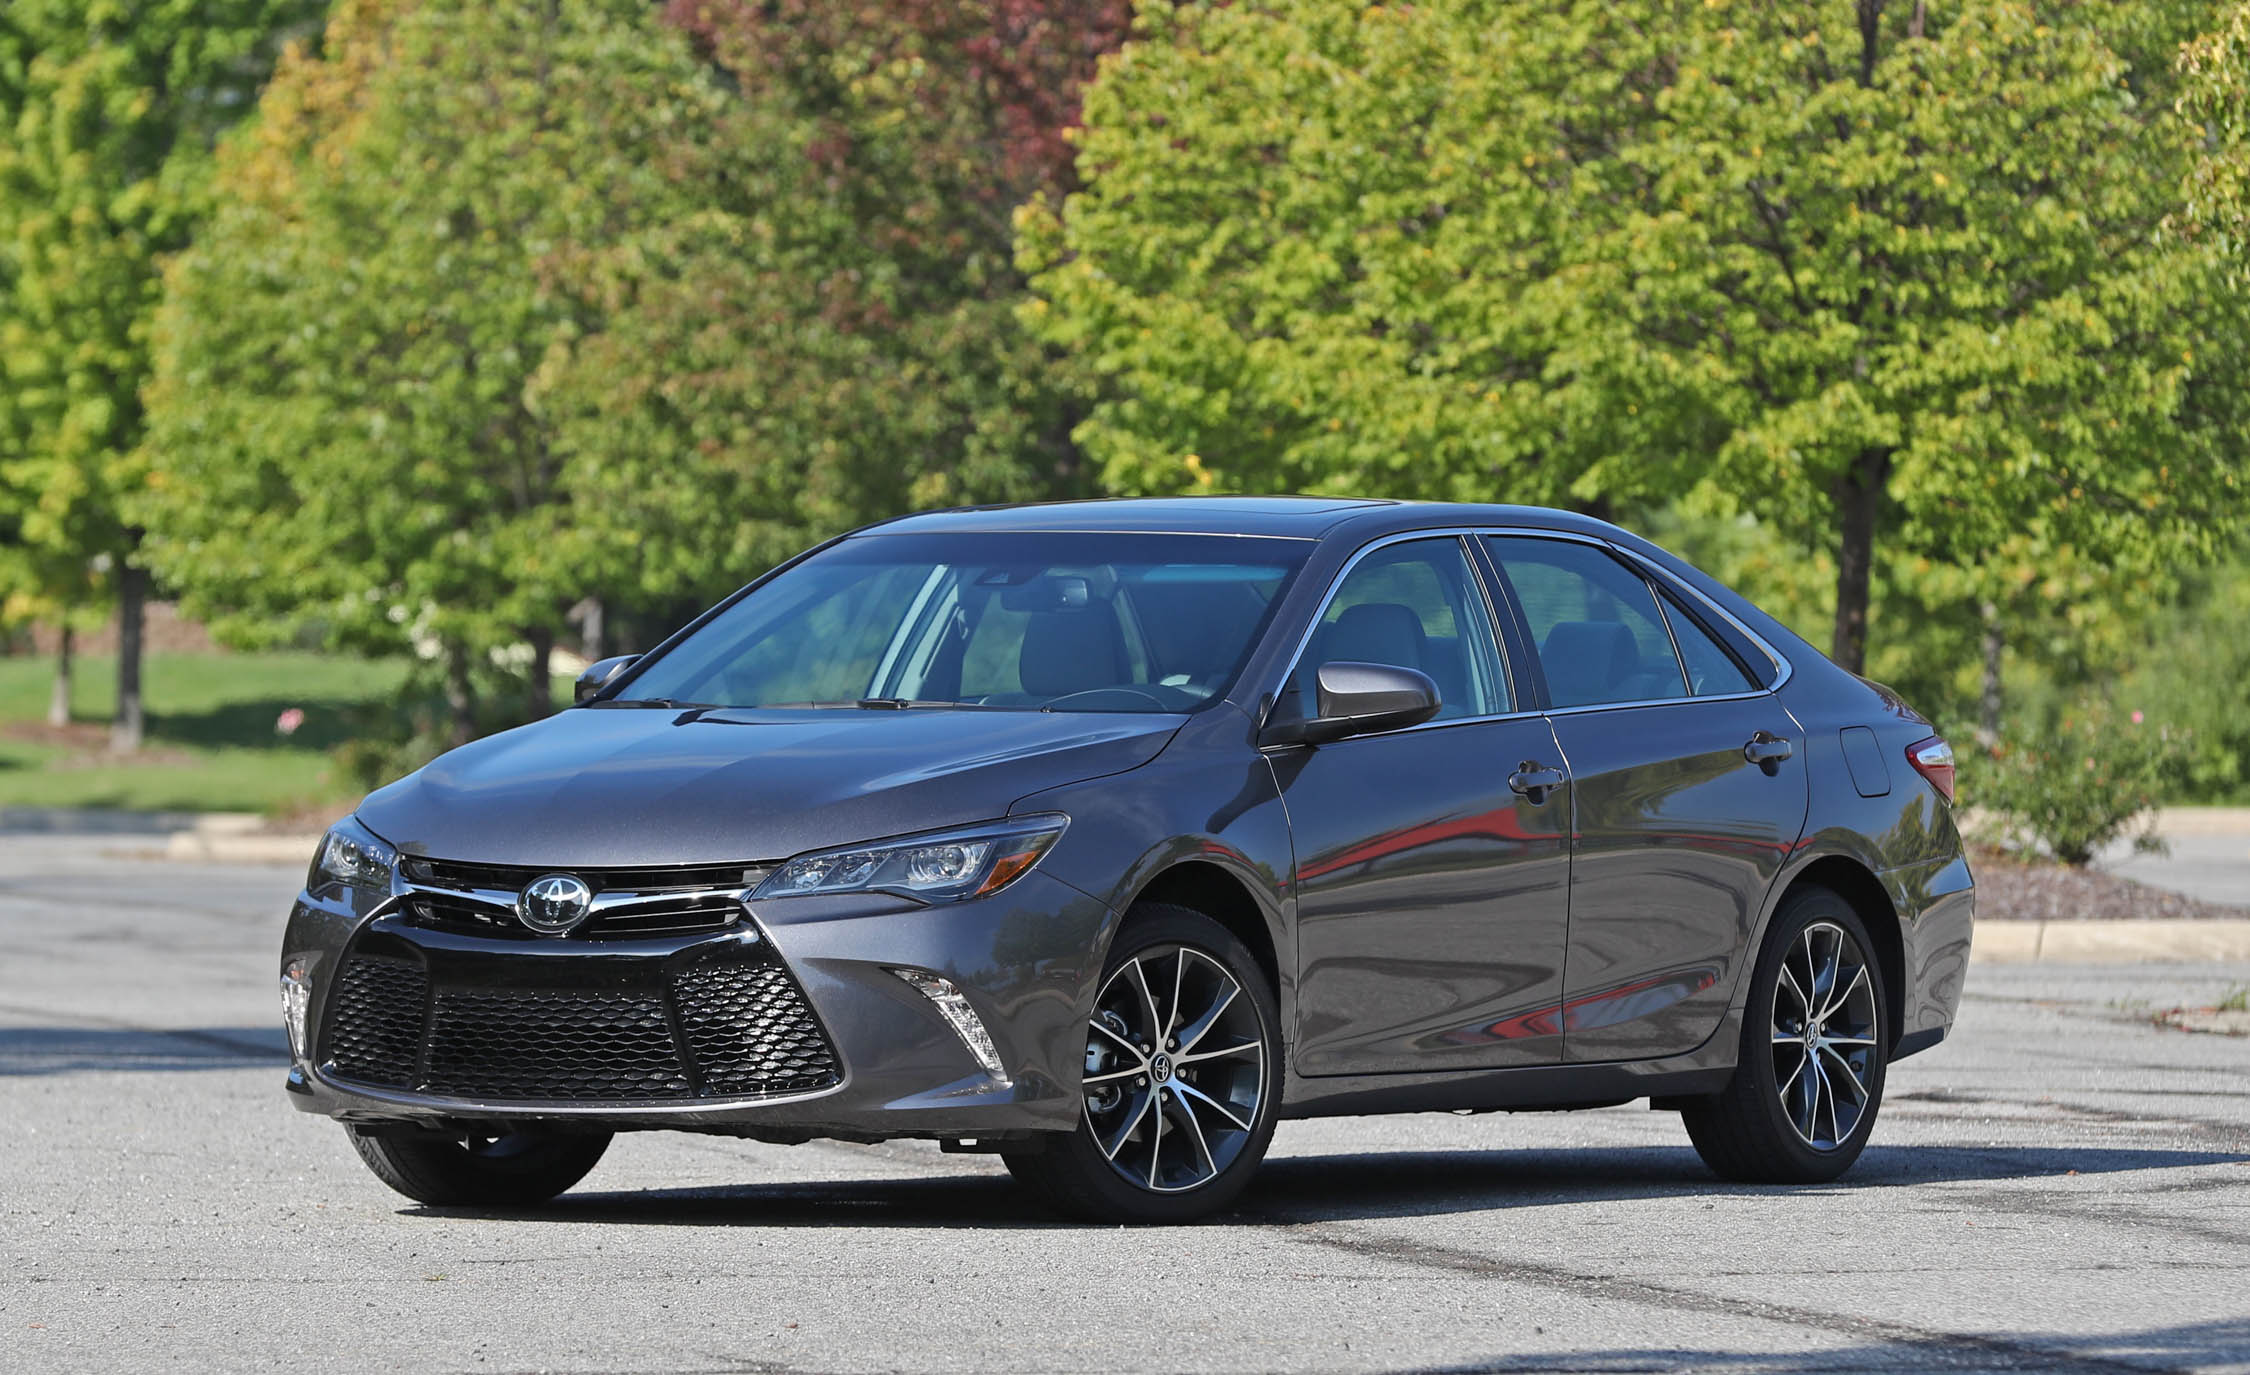 2017 Toyota Camry Exterior Front And Side (View 36 of 37)